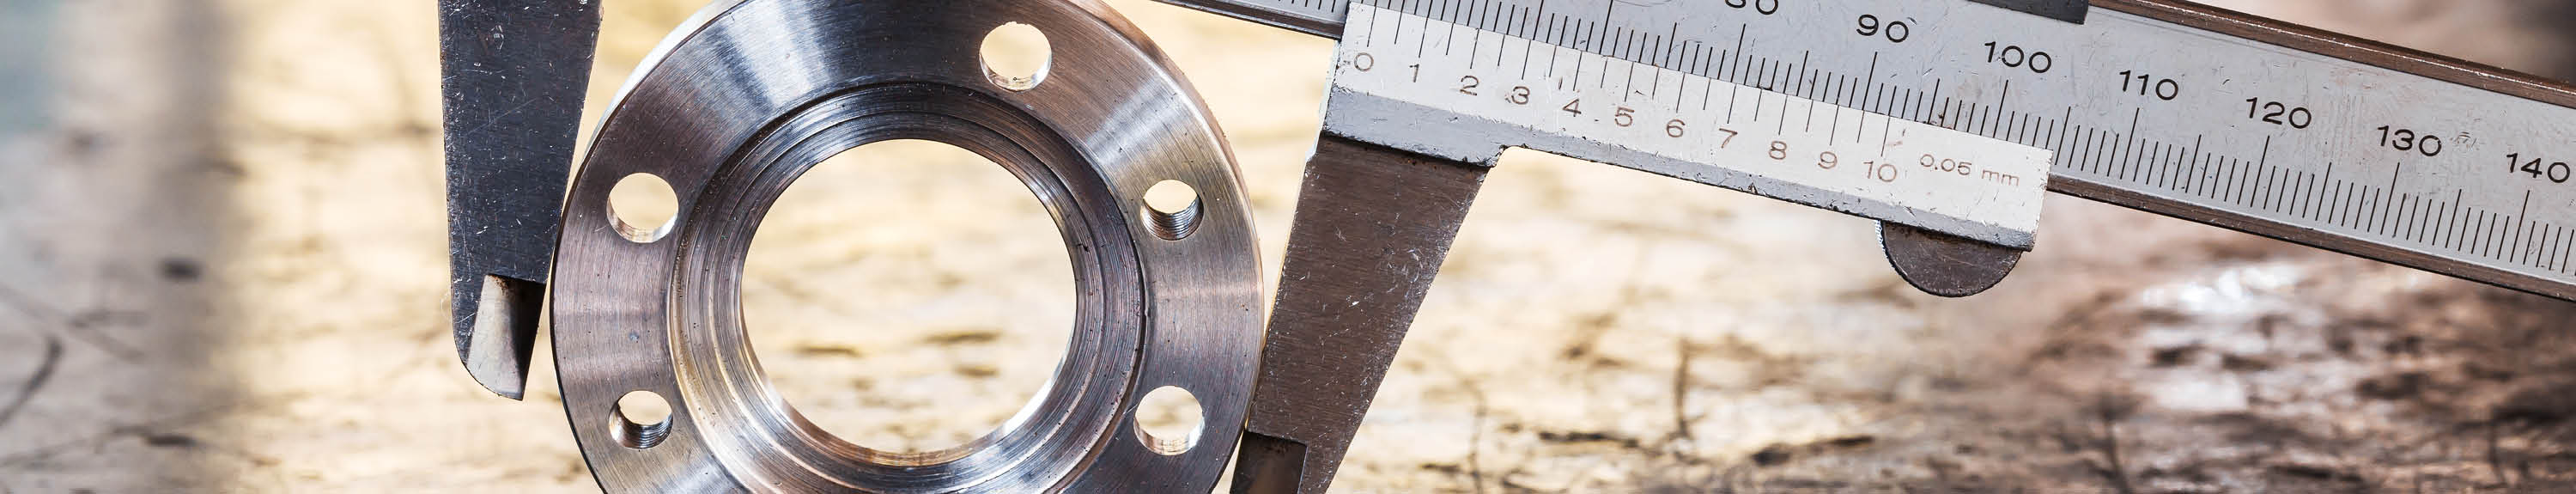 How much vibration can precision take?